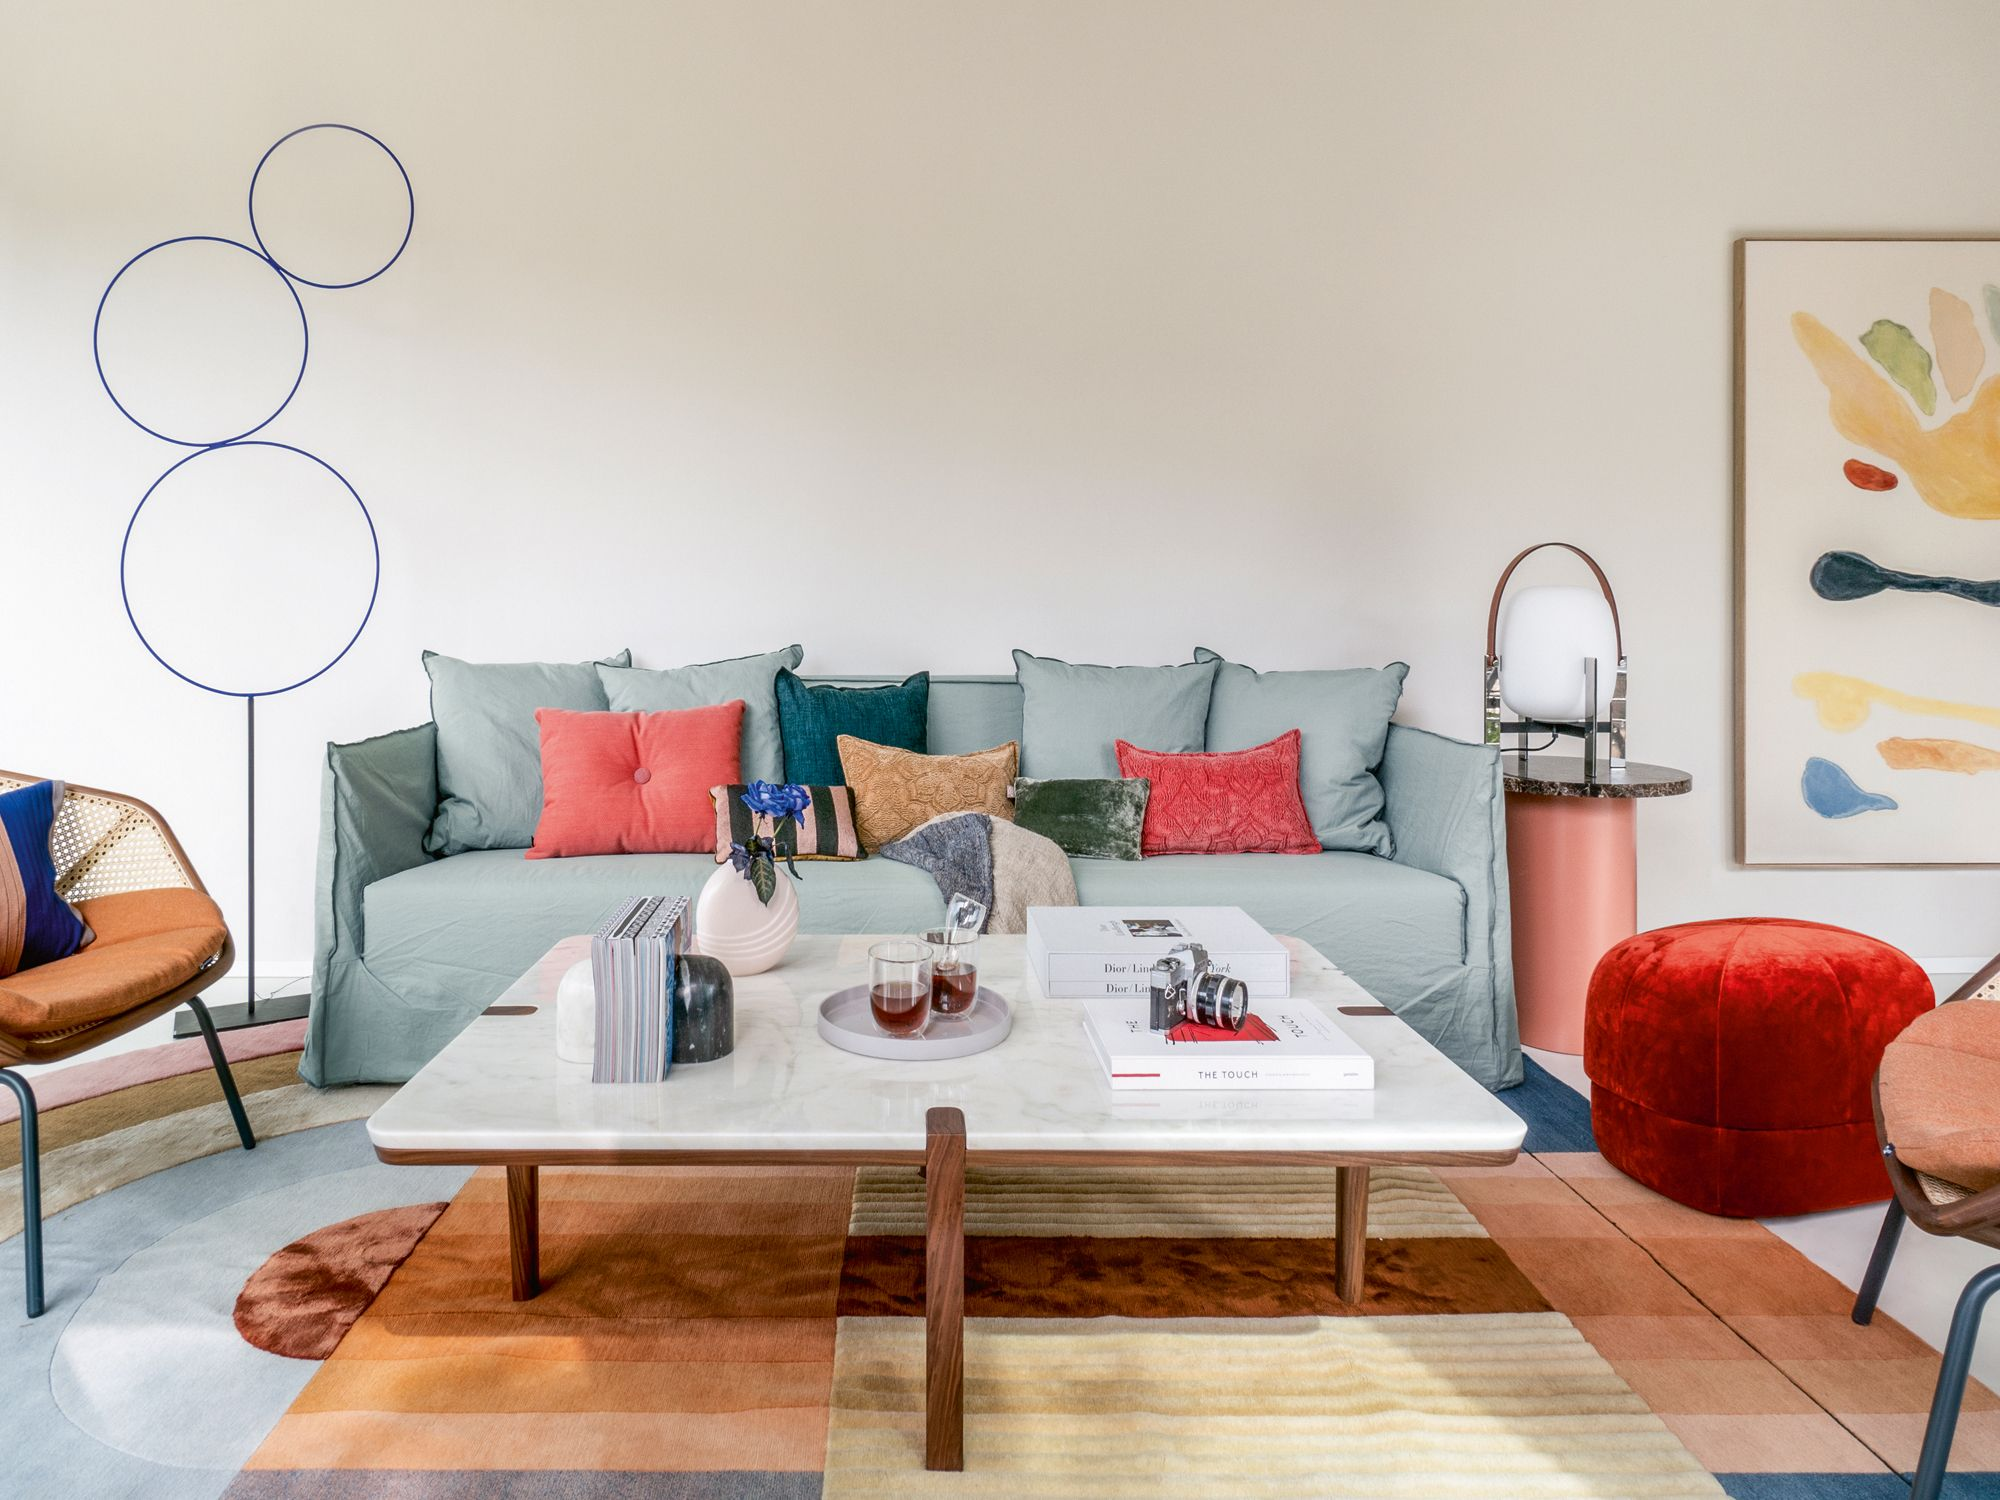 The living room is furnished with the Gervasoni Ghost sofa, Miniform armchairs, We Wood coffee table, Normann Copenhagen pouf, Santa & Cole lamp and E15 Enoki side table